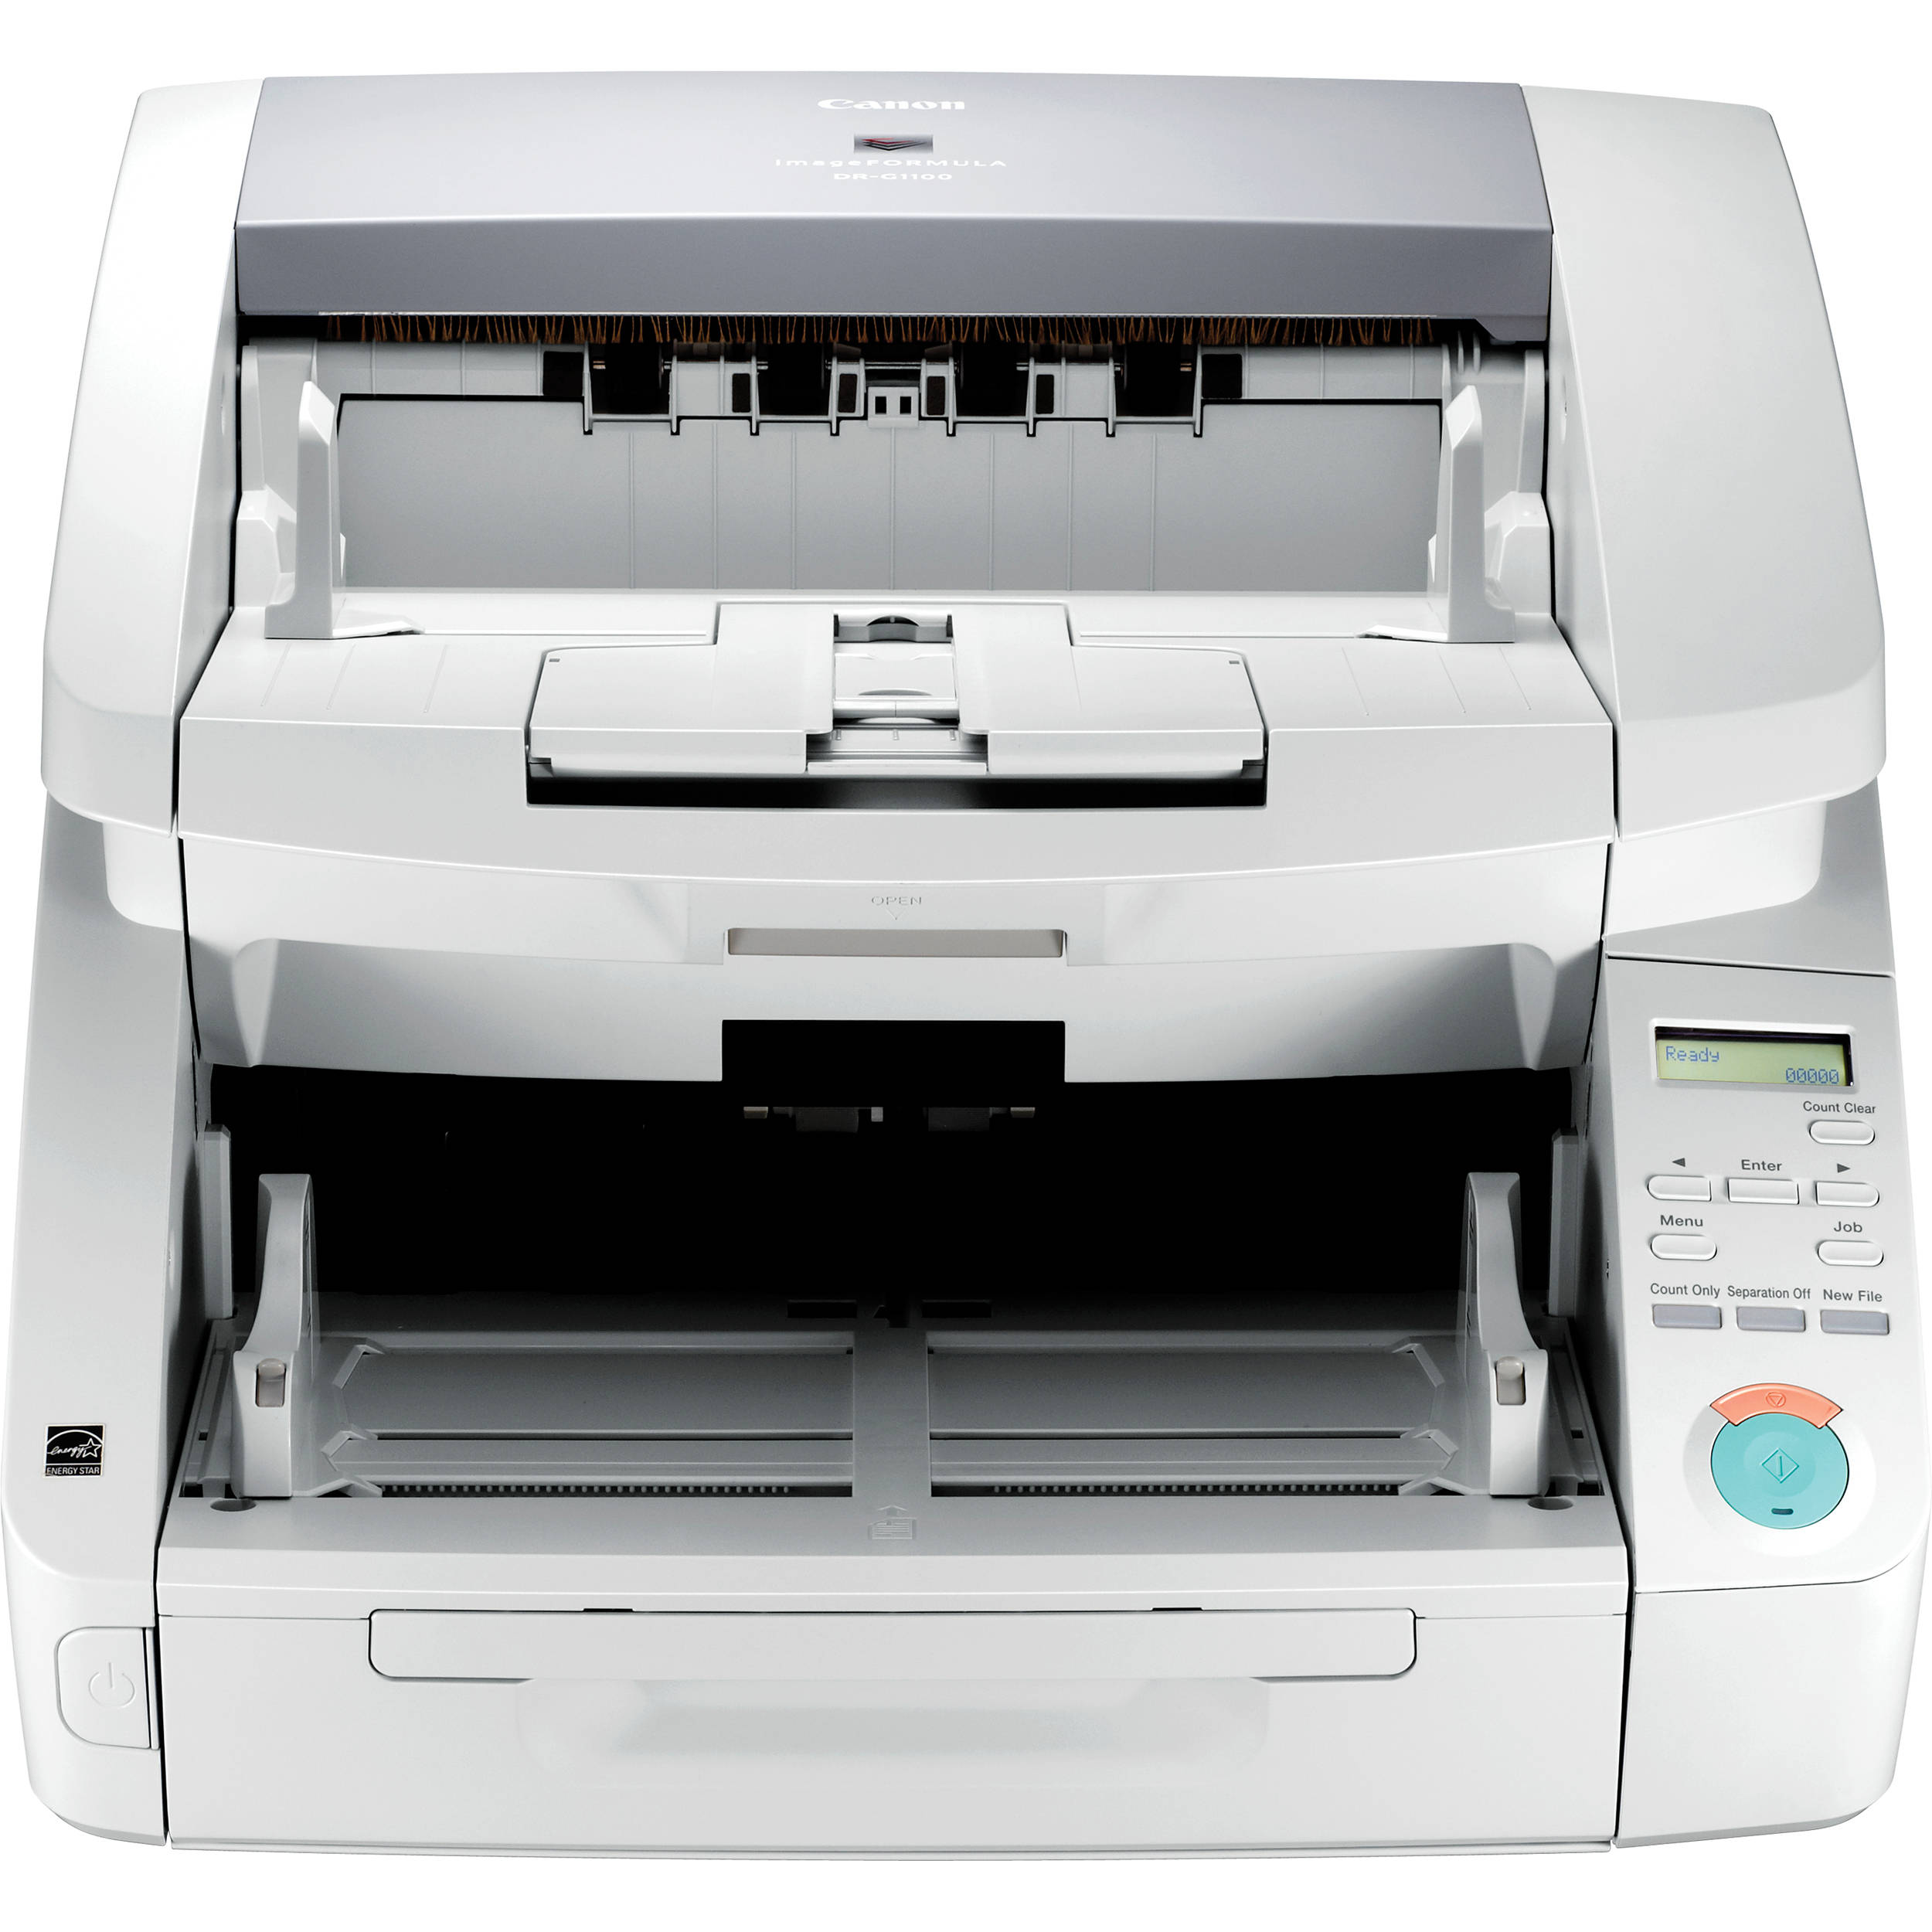 CANON DR-G1100 SCANNER WINDOWS 7 DRIVERS DOWNLOAD (2019)